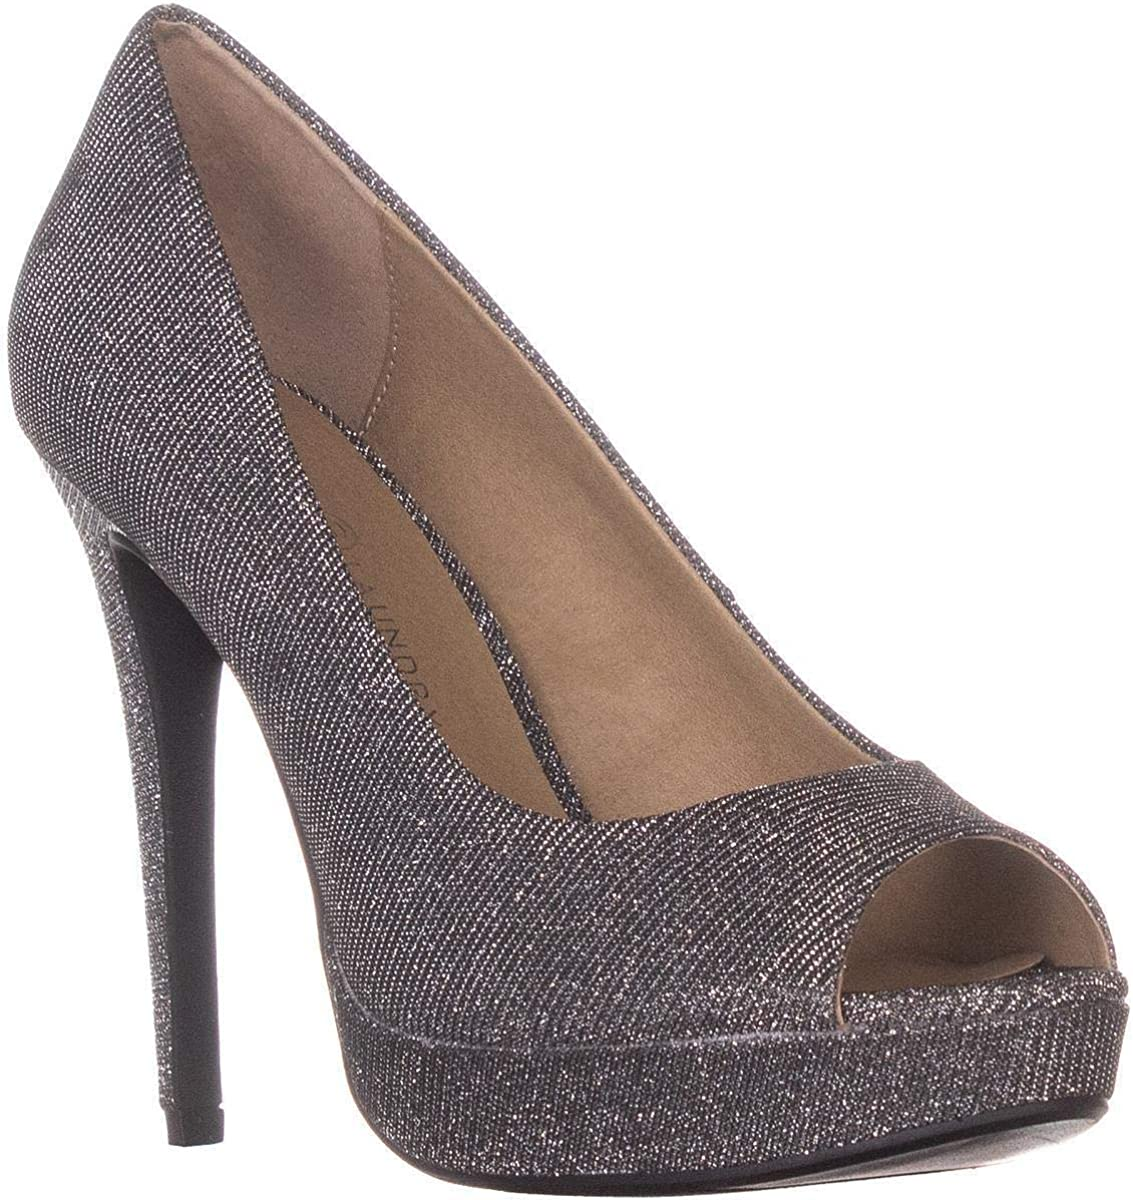 Chinese Laundry Womens Haley Solid Peep Toe Pumps